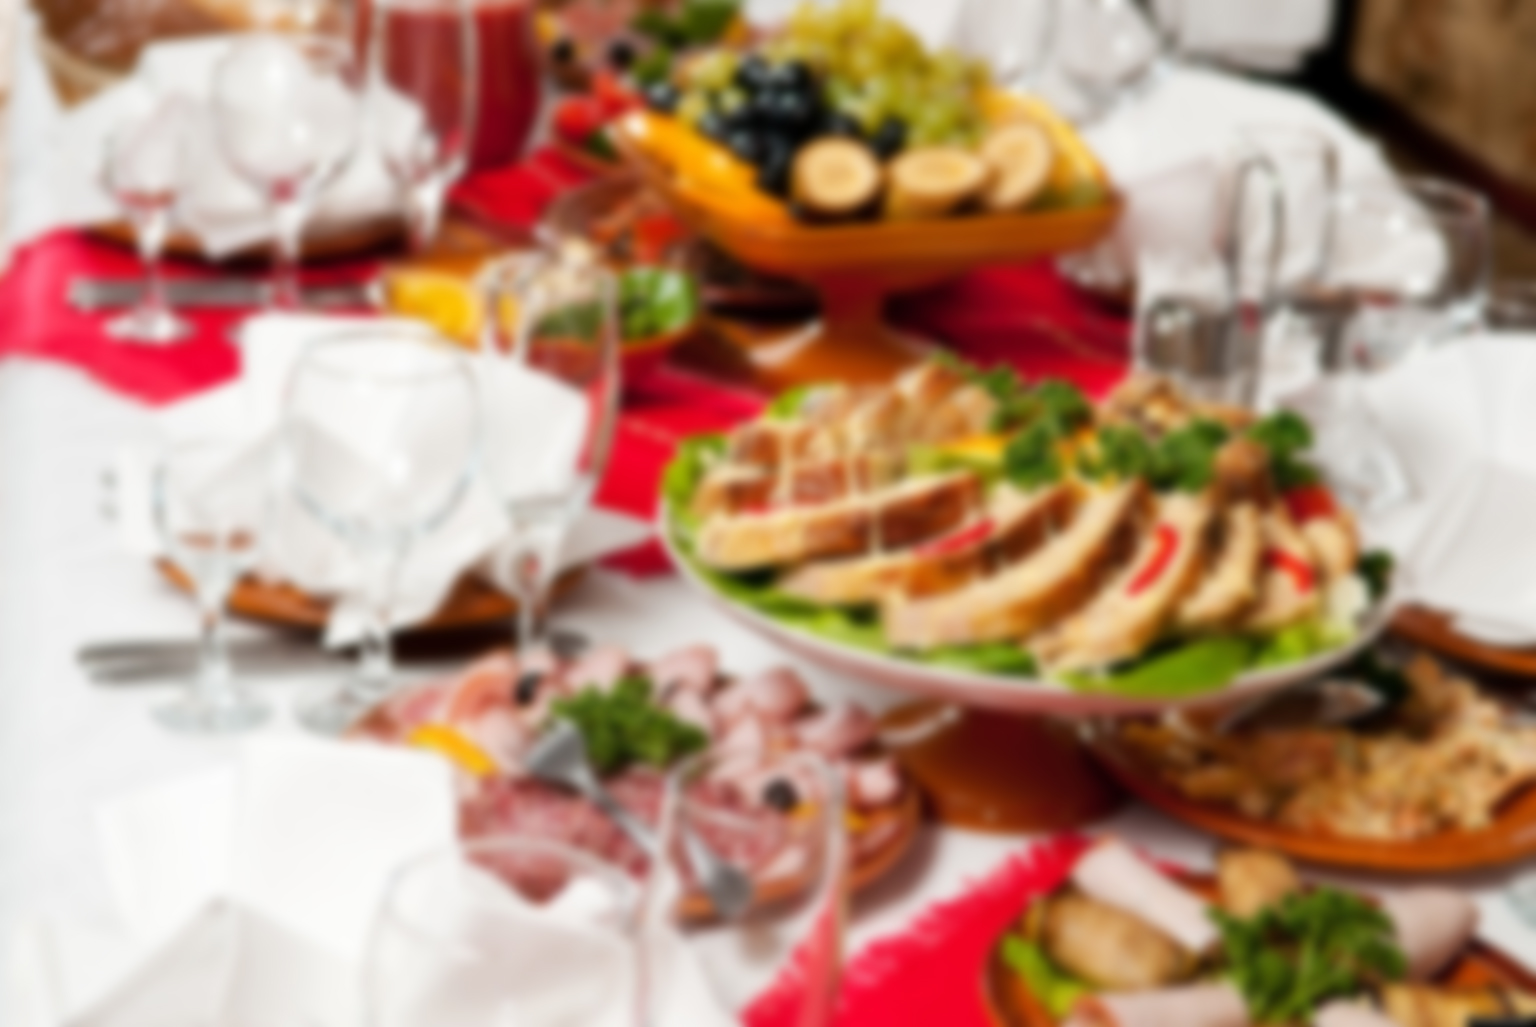 catering table set service with silverware and glass stemware at restaurant before party; Shutterstock ID 70419784; PO: aol; Job: production; Client: drone